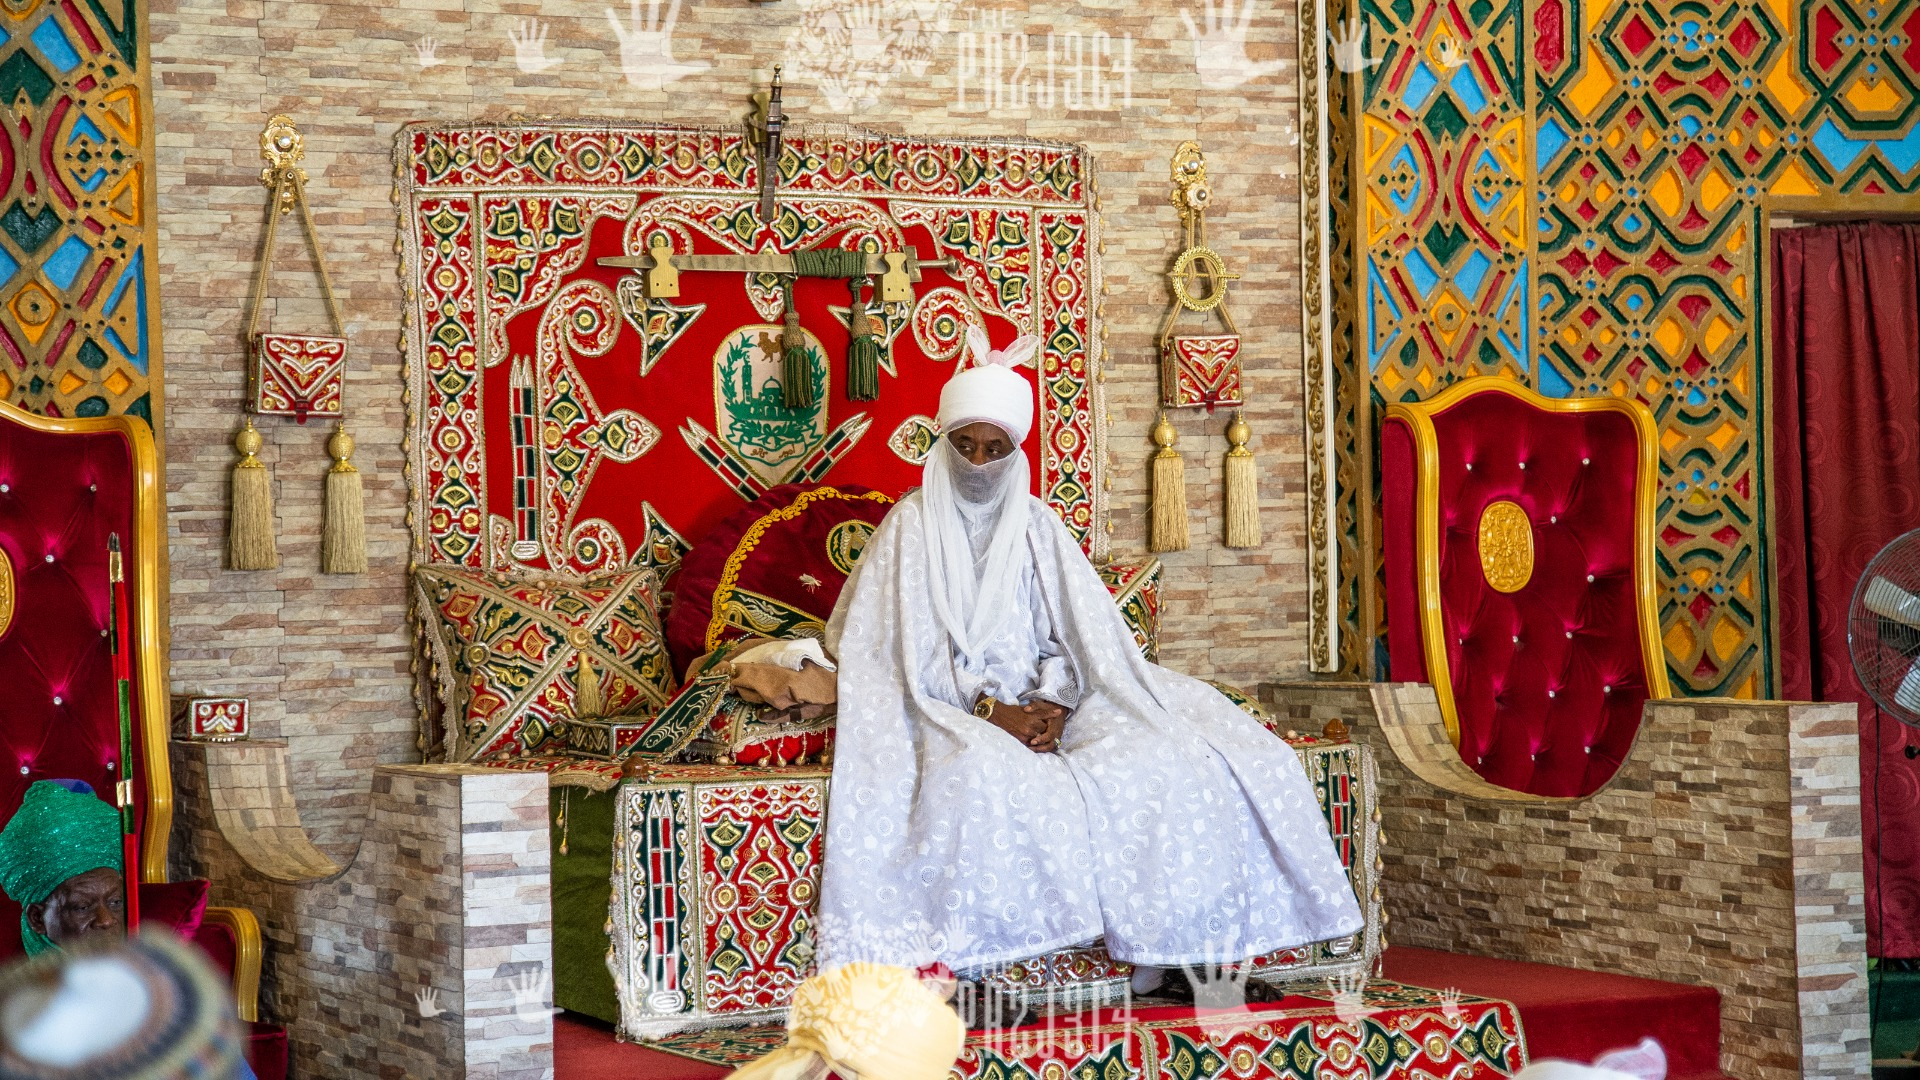 Sanusi Lamido Sanusi's Dethronement: Four Things You Should Know About The Power Of Traditional Rulers In Nigeria